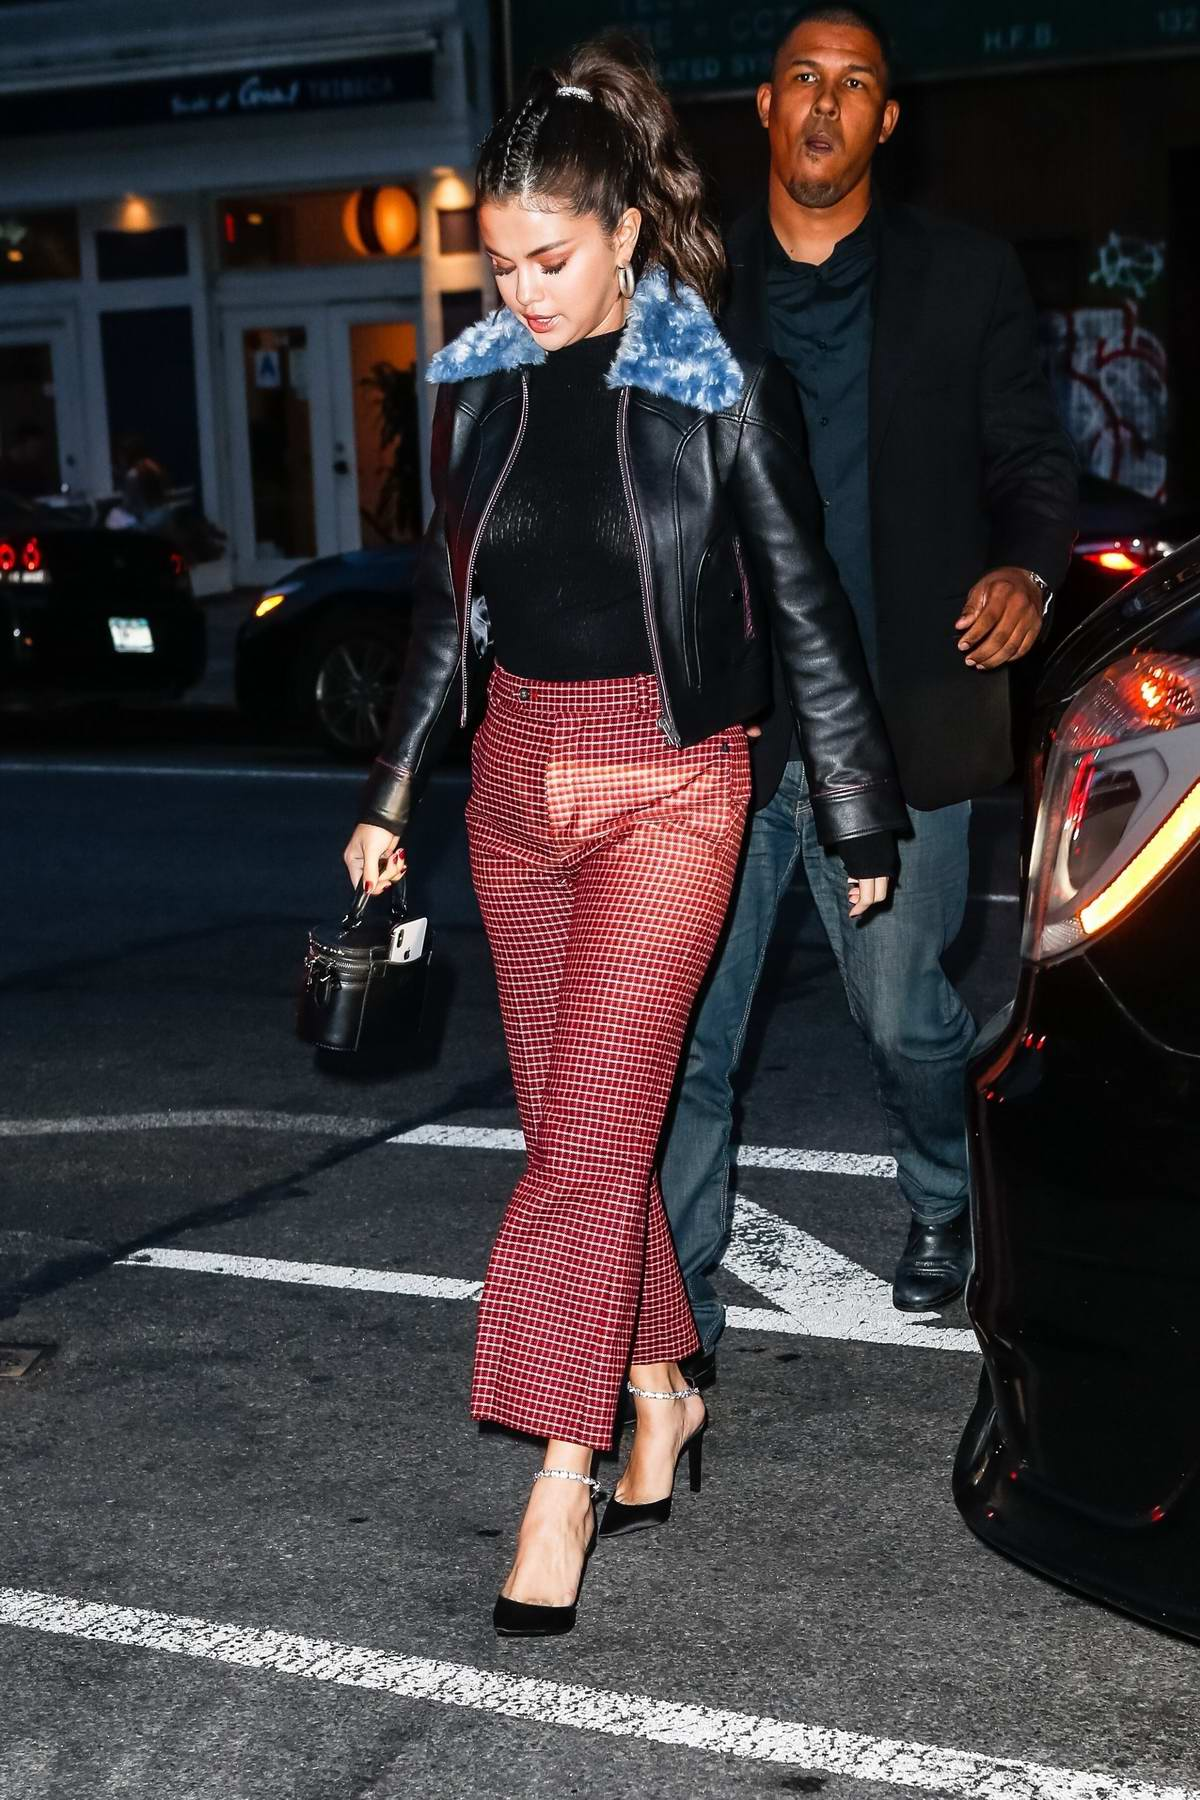 Selena Gomez wears a black leather jacket with red and white checkered pants while out with friends for dinner in New York City